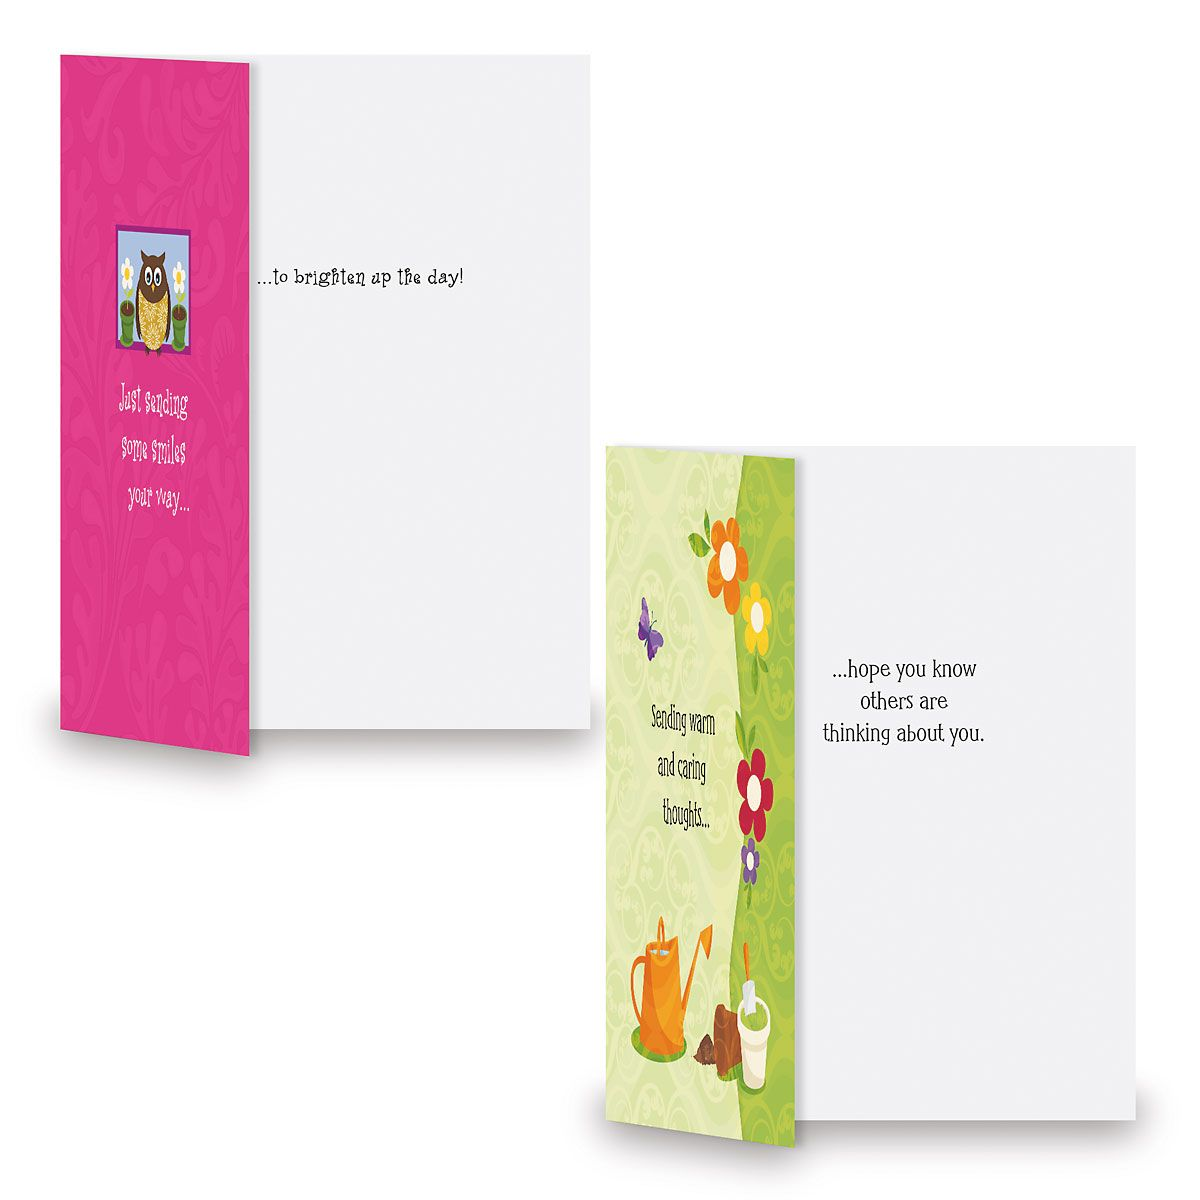 Thinking of You Greeting Cards Value Pack - 16